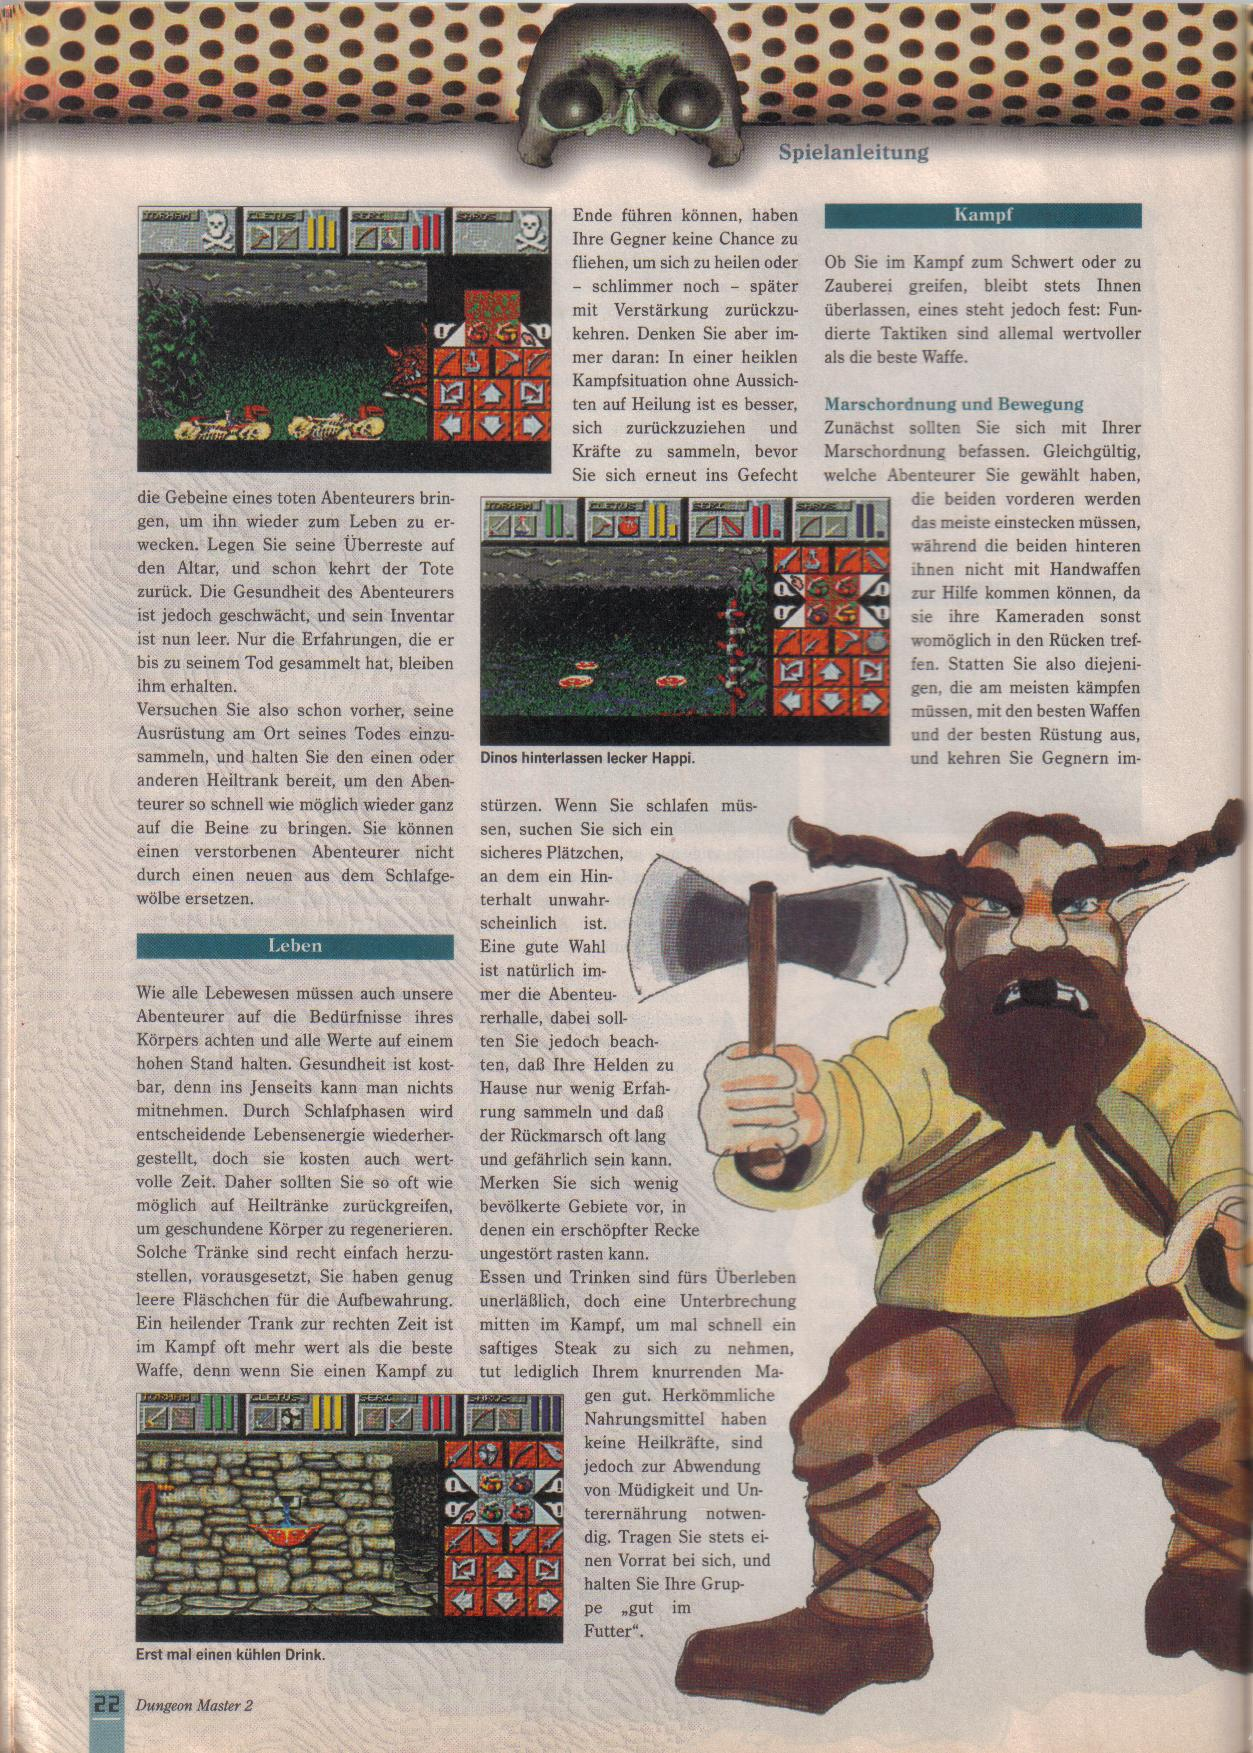 Dungeon Master II for PC (German, Best Seller Games) Page 22